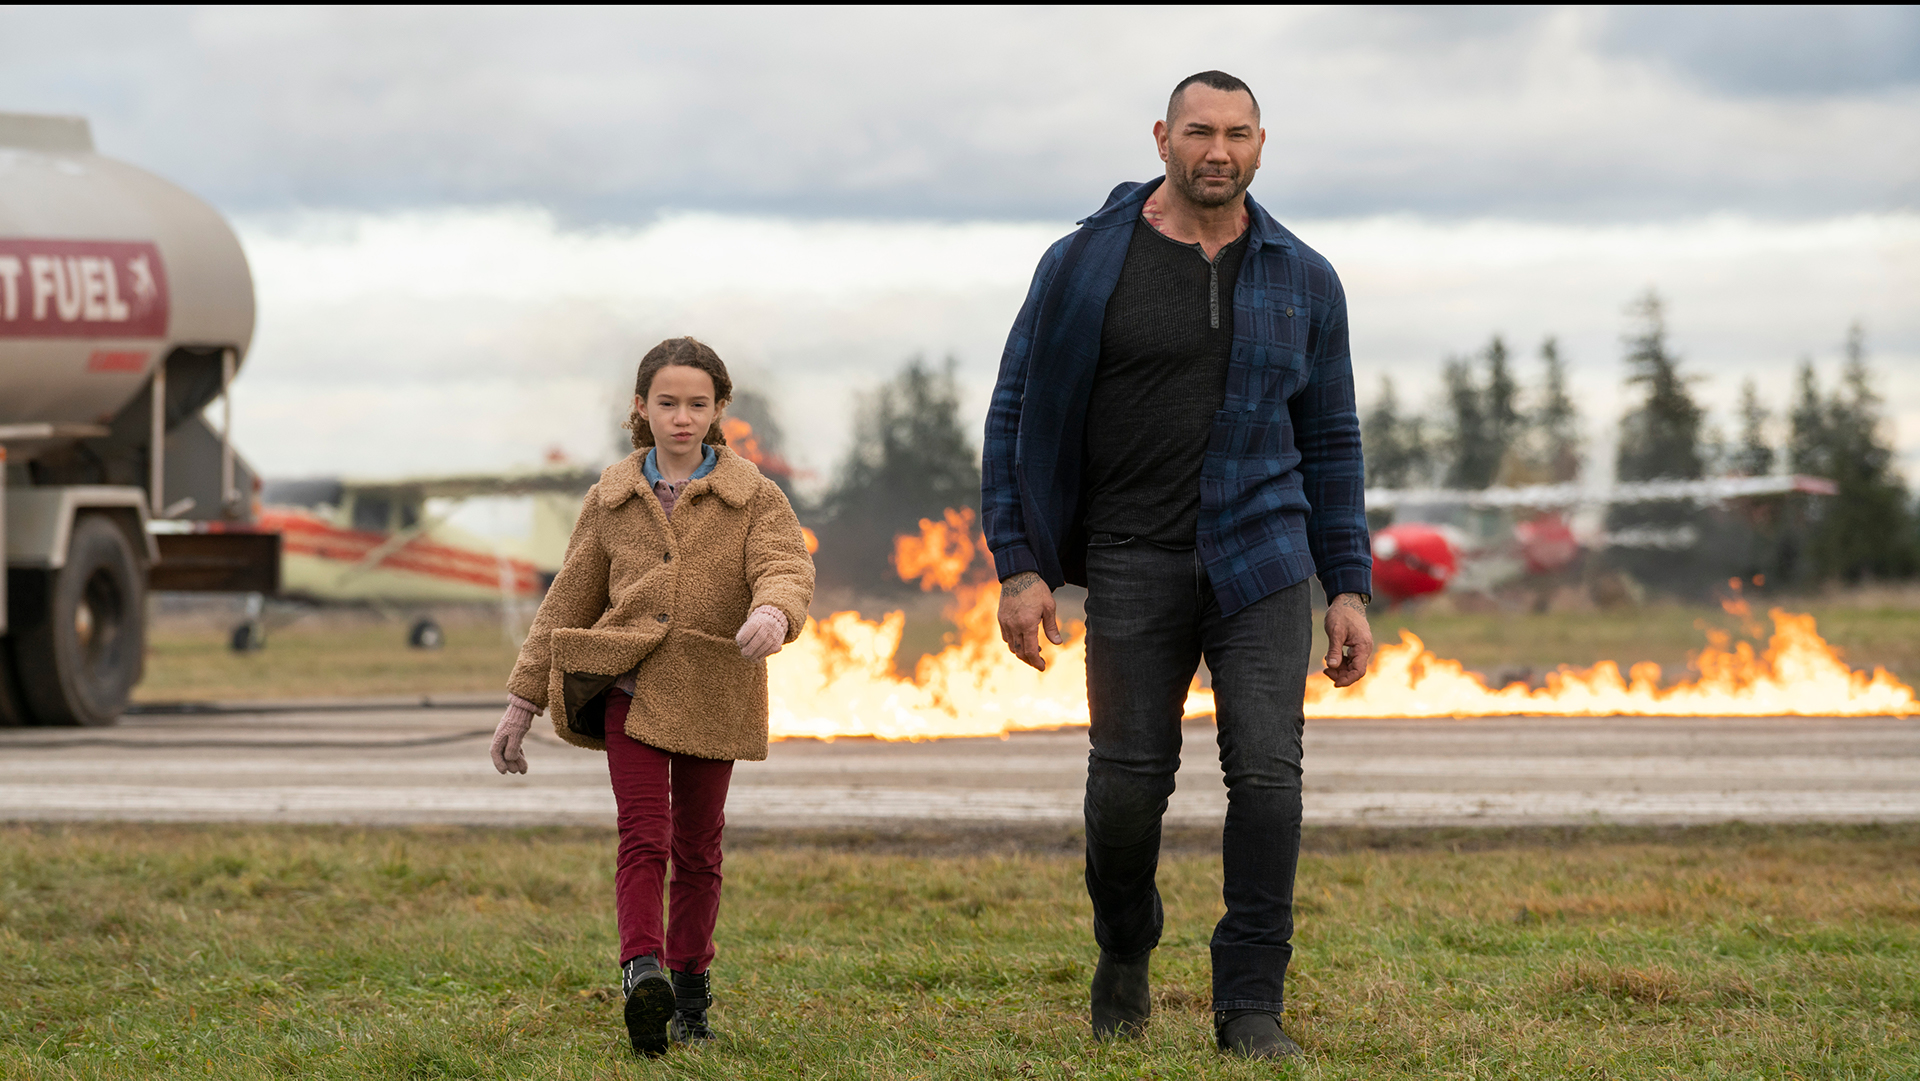 My Spy Review: Dave Bautista's Spy Thriller is Watchable! But It's Still a Passable Flick(Rating: **1/2)